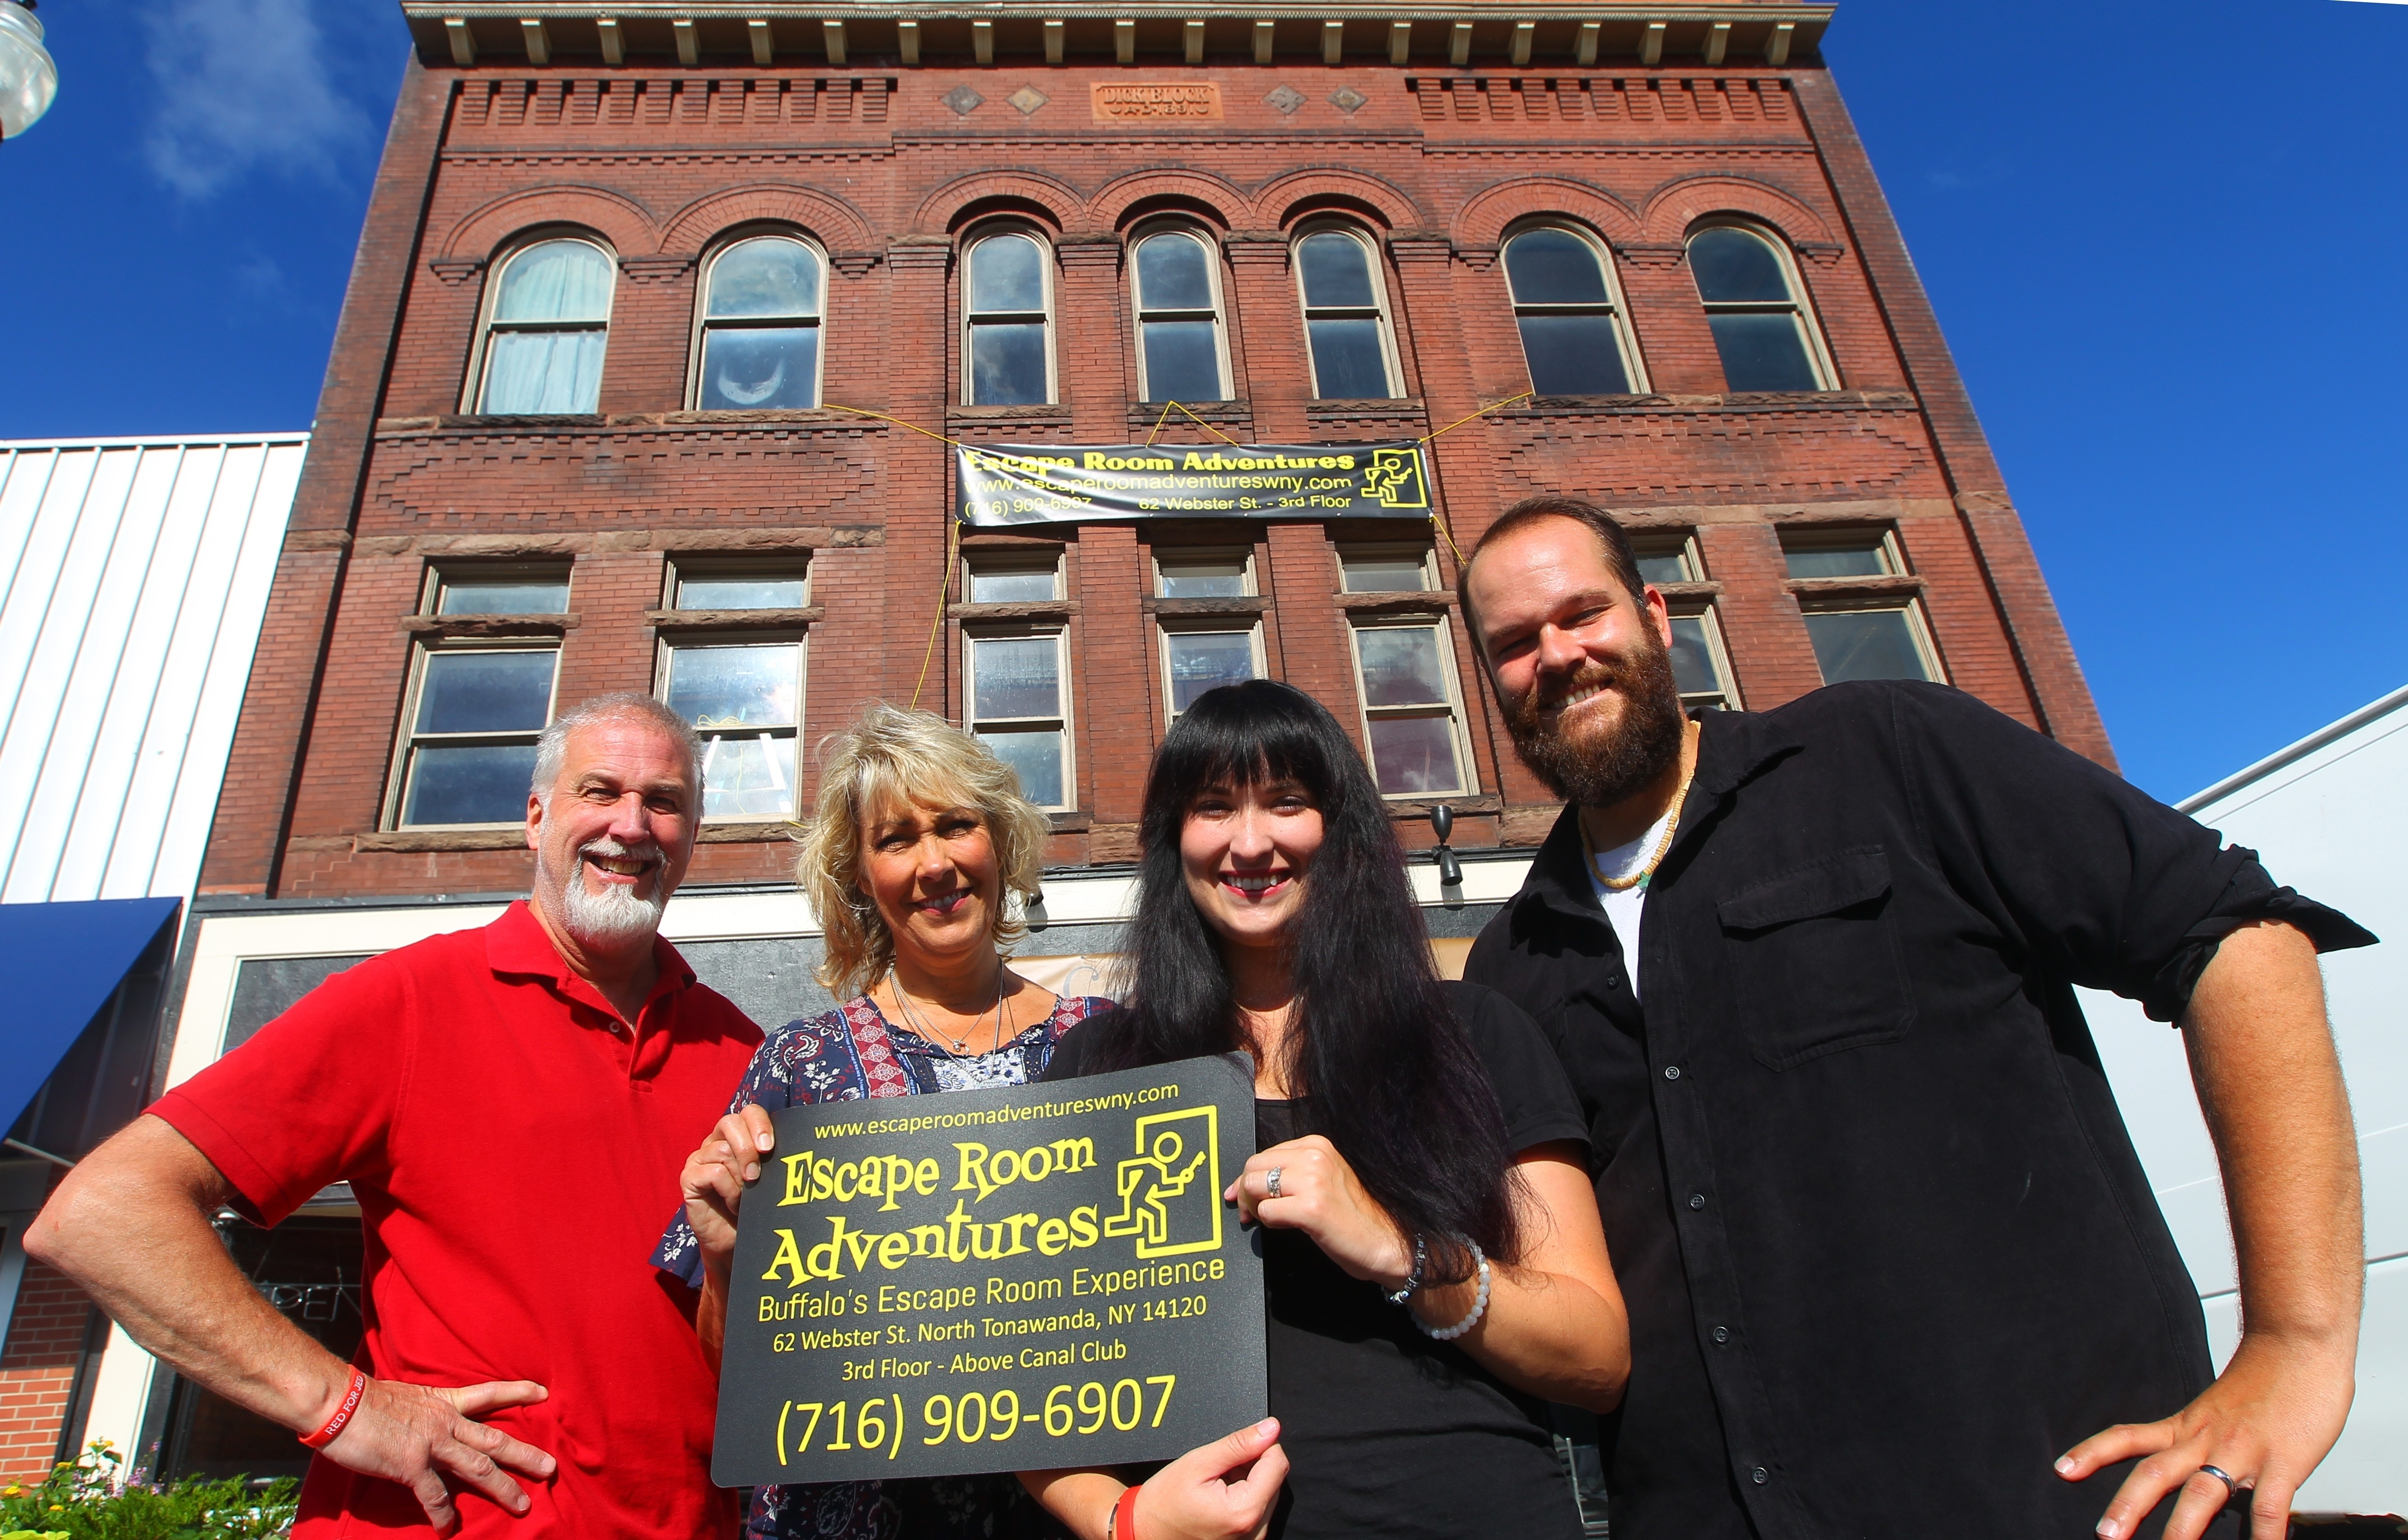 Mark Woomer and his wife Carolyn, daughter Amanda Limpert, and Amanda's husband Adam in front of their family business Escape Room Adventures WNY on the third floor at 62 Webster St., in North Tonawanda, N.Y. on Thursday Sept. 1, 2016.  (John Hickey/North Tonawanda News)